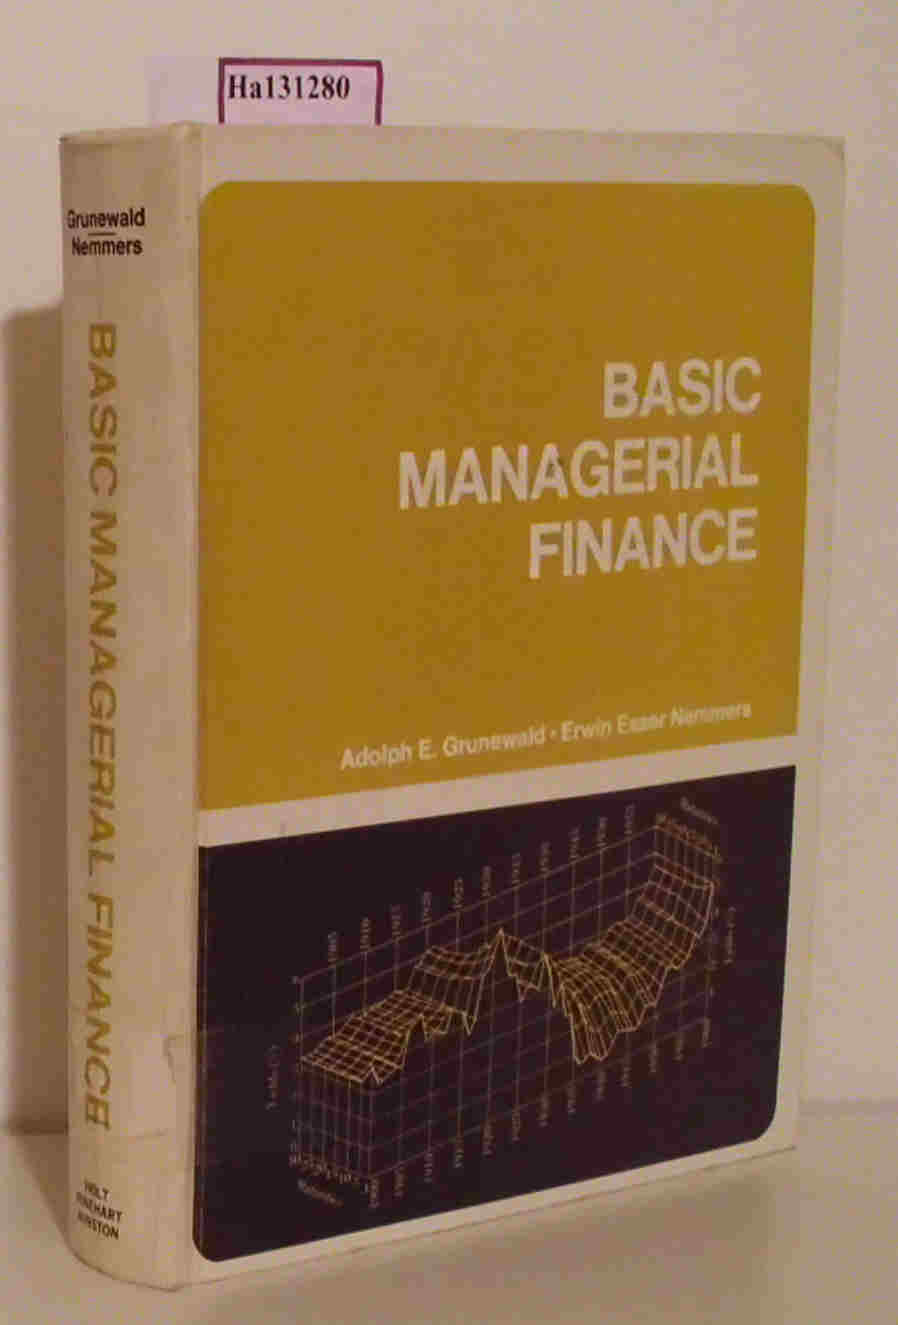 Grunewald,  Adolph E. / Nemmers, Erwin Esser: Basic Managerial Finance. (Holt, Rinehart and Winston Series in Finance).